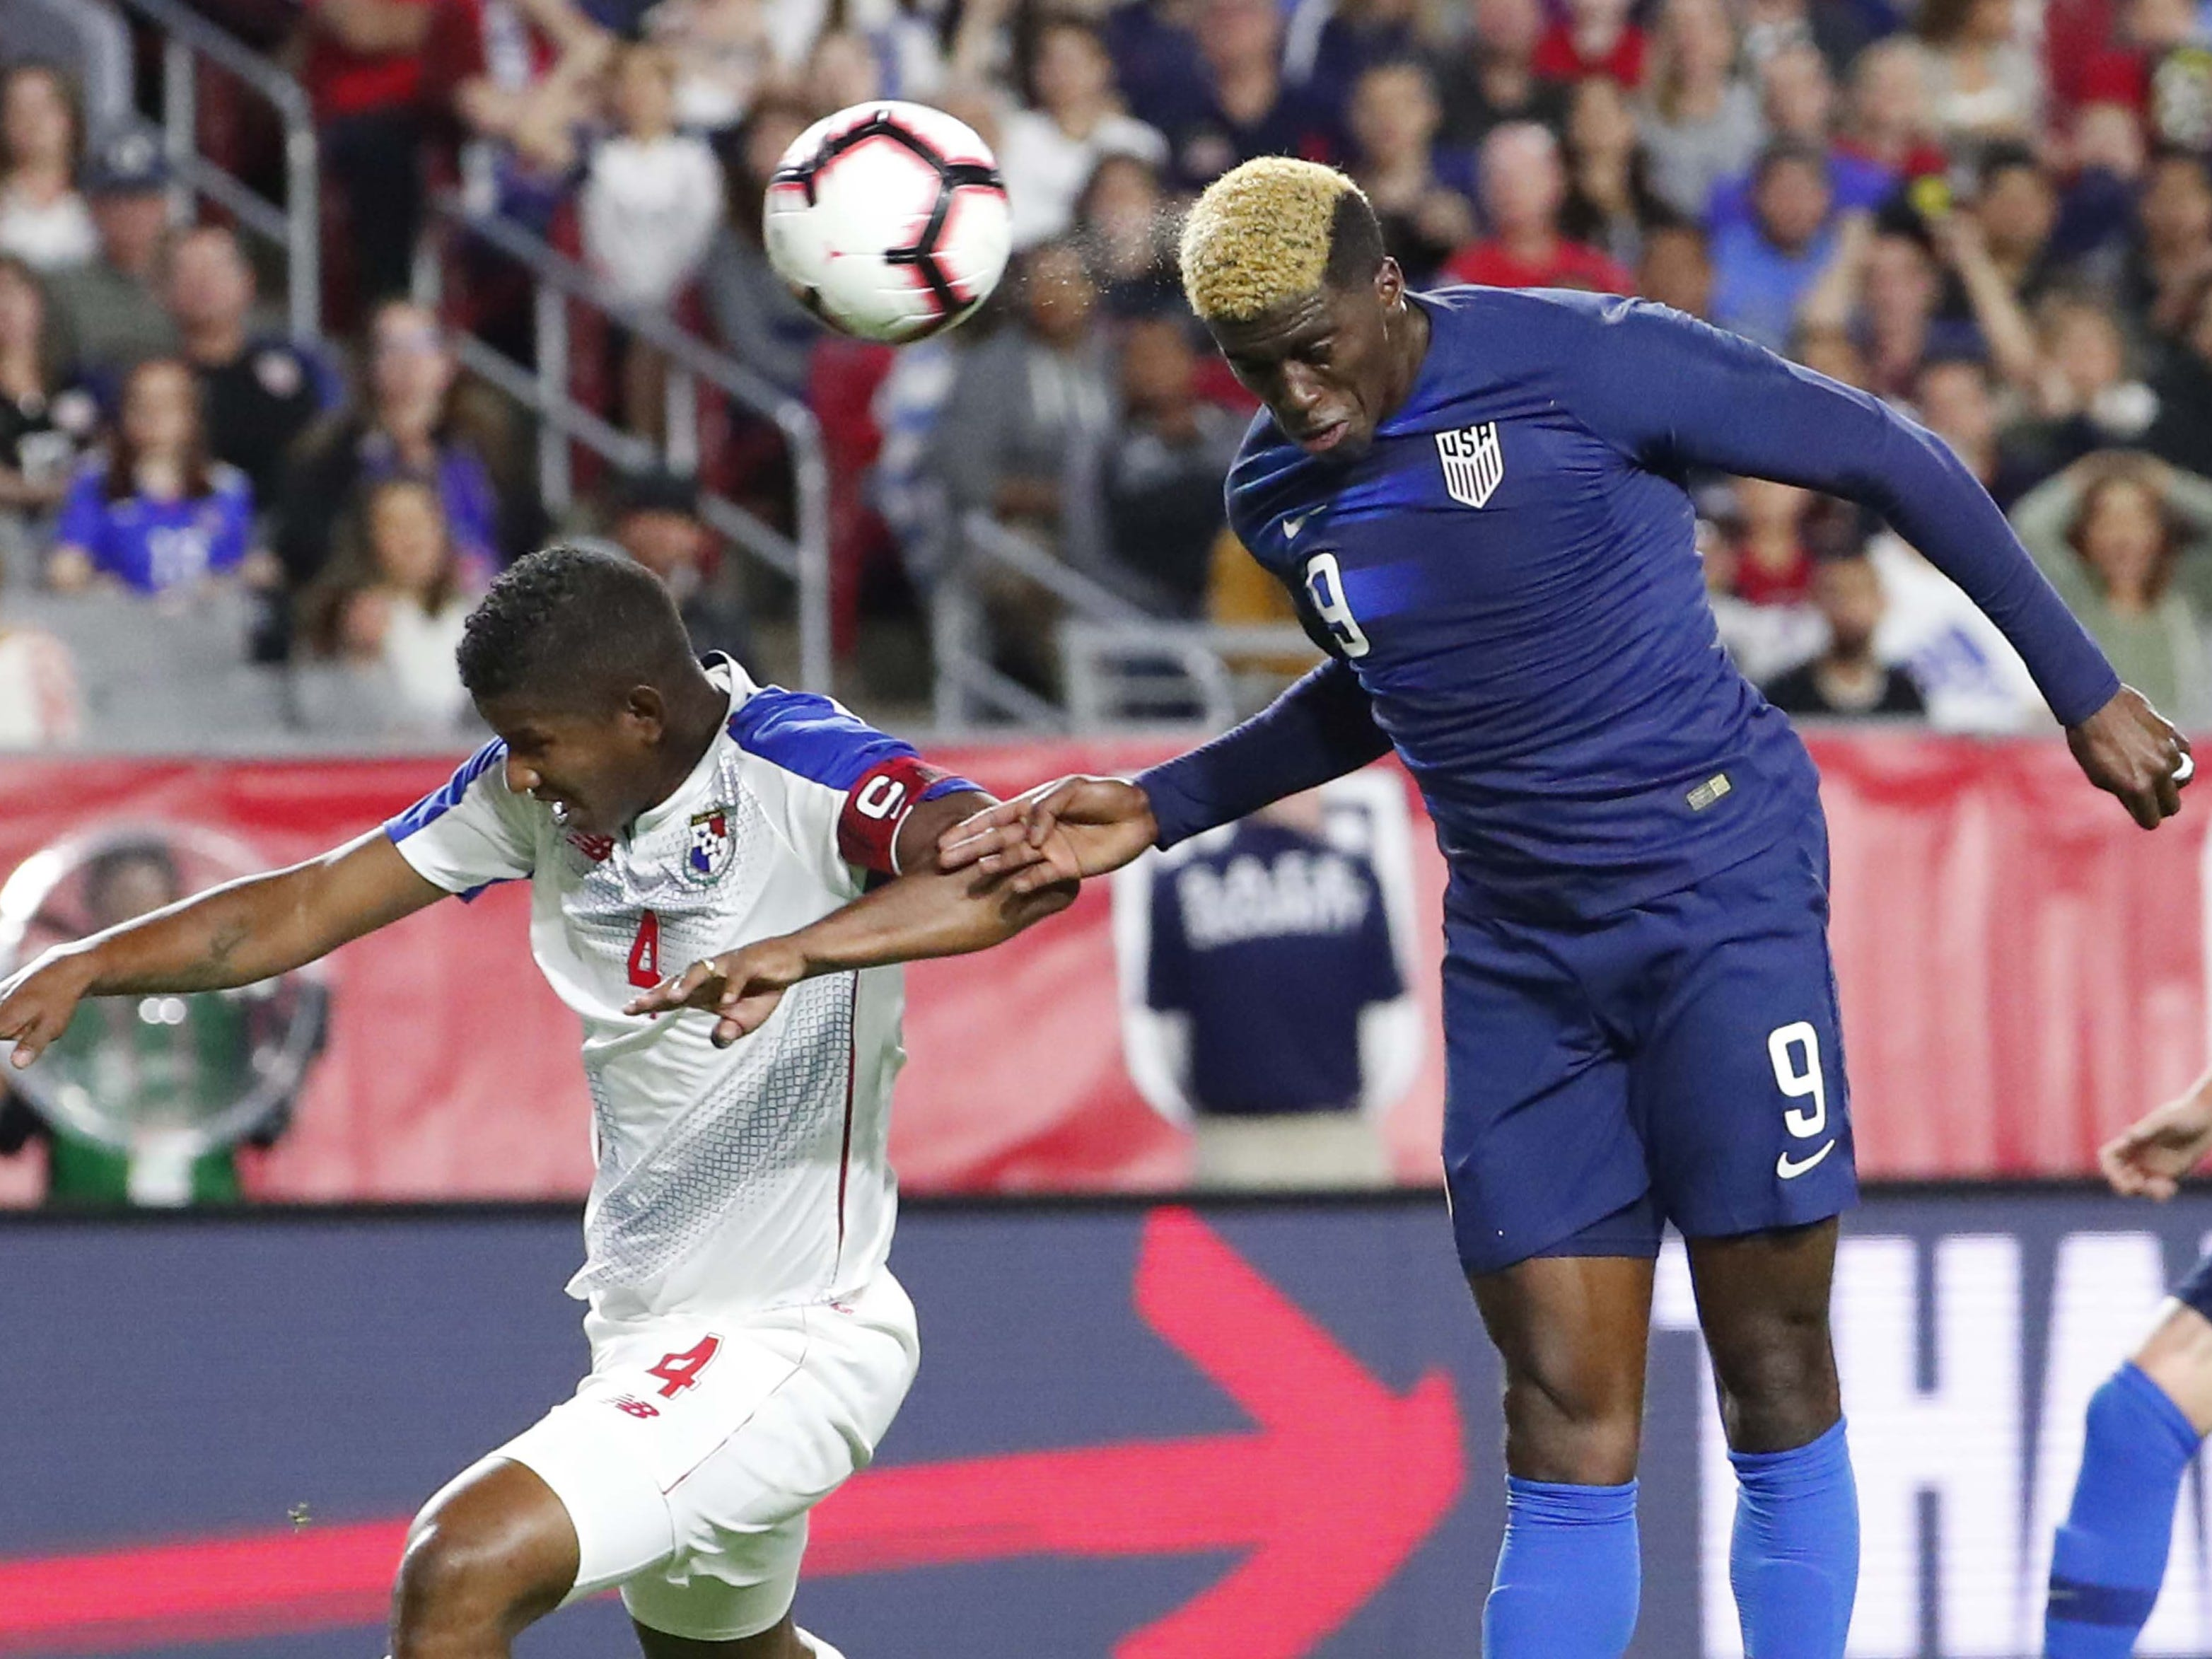 U.S. Gyasi Zardes (9) takes a shot while defended by Panama defender Fidel Escobar (4) during the first half of a friendly between Jan. 27, 2019 in Glendale, Ariz.